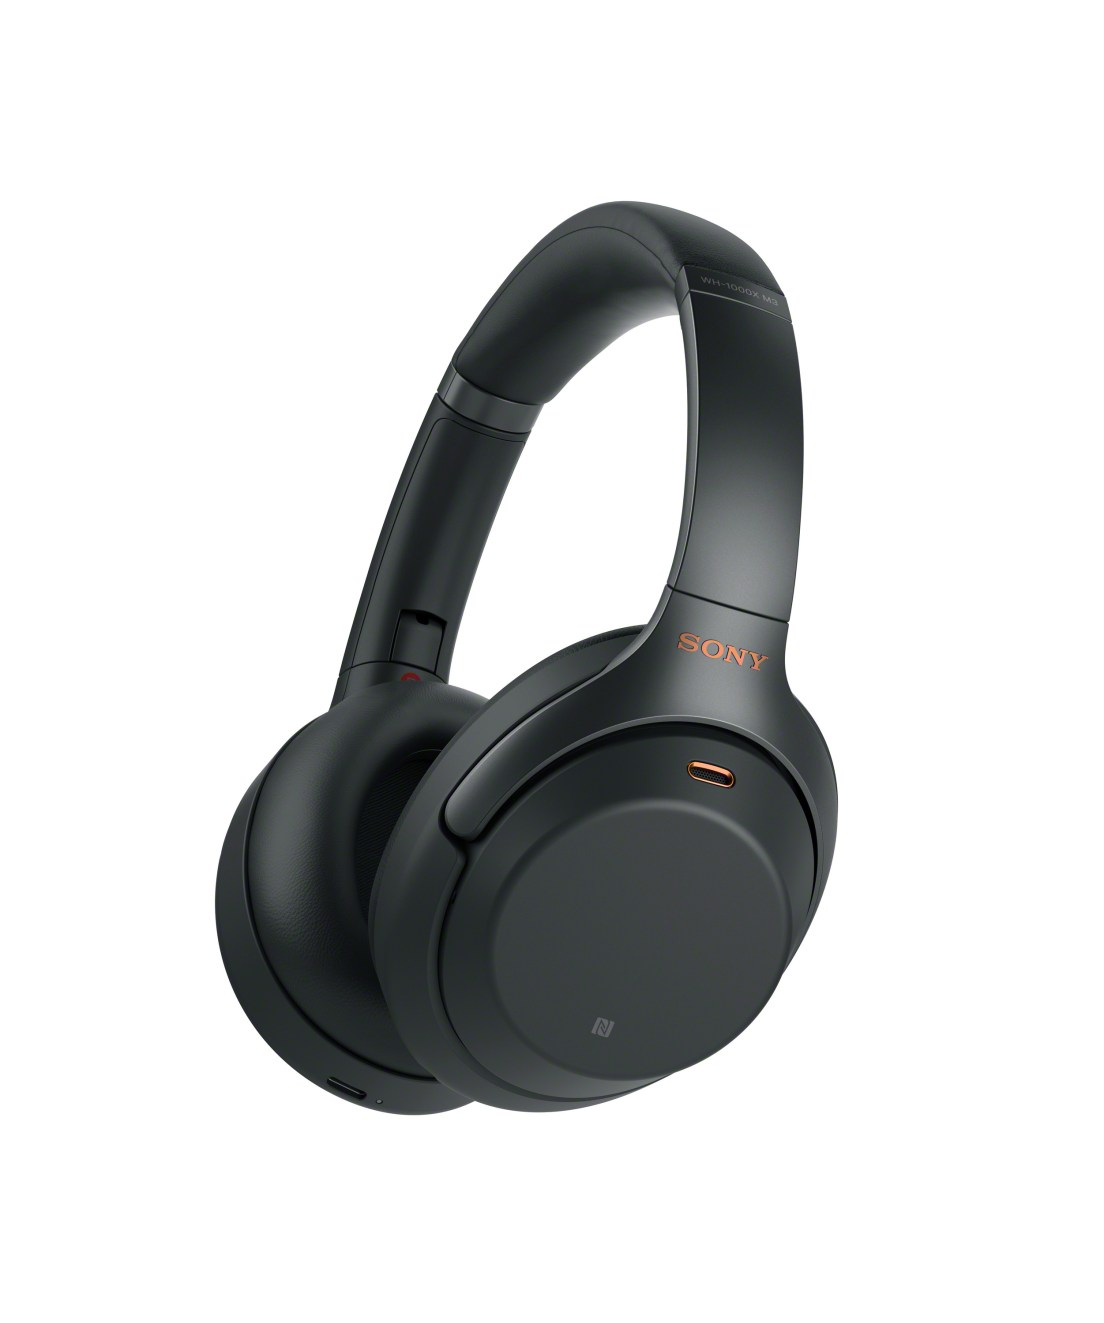 Sony WH-1000XM3 - Noise Canceling Headphones Done RIGHT! 2